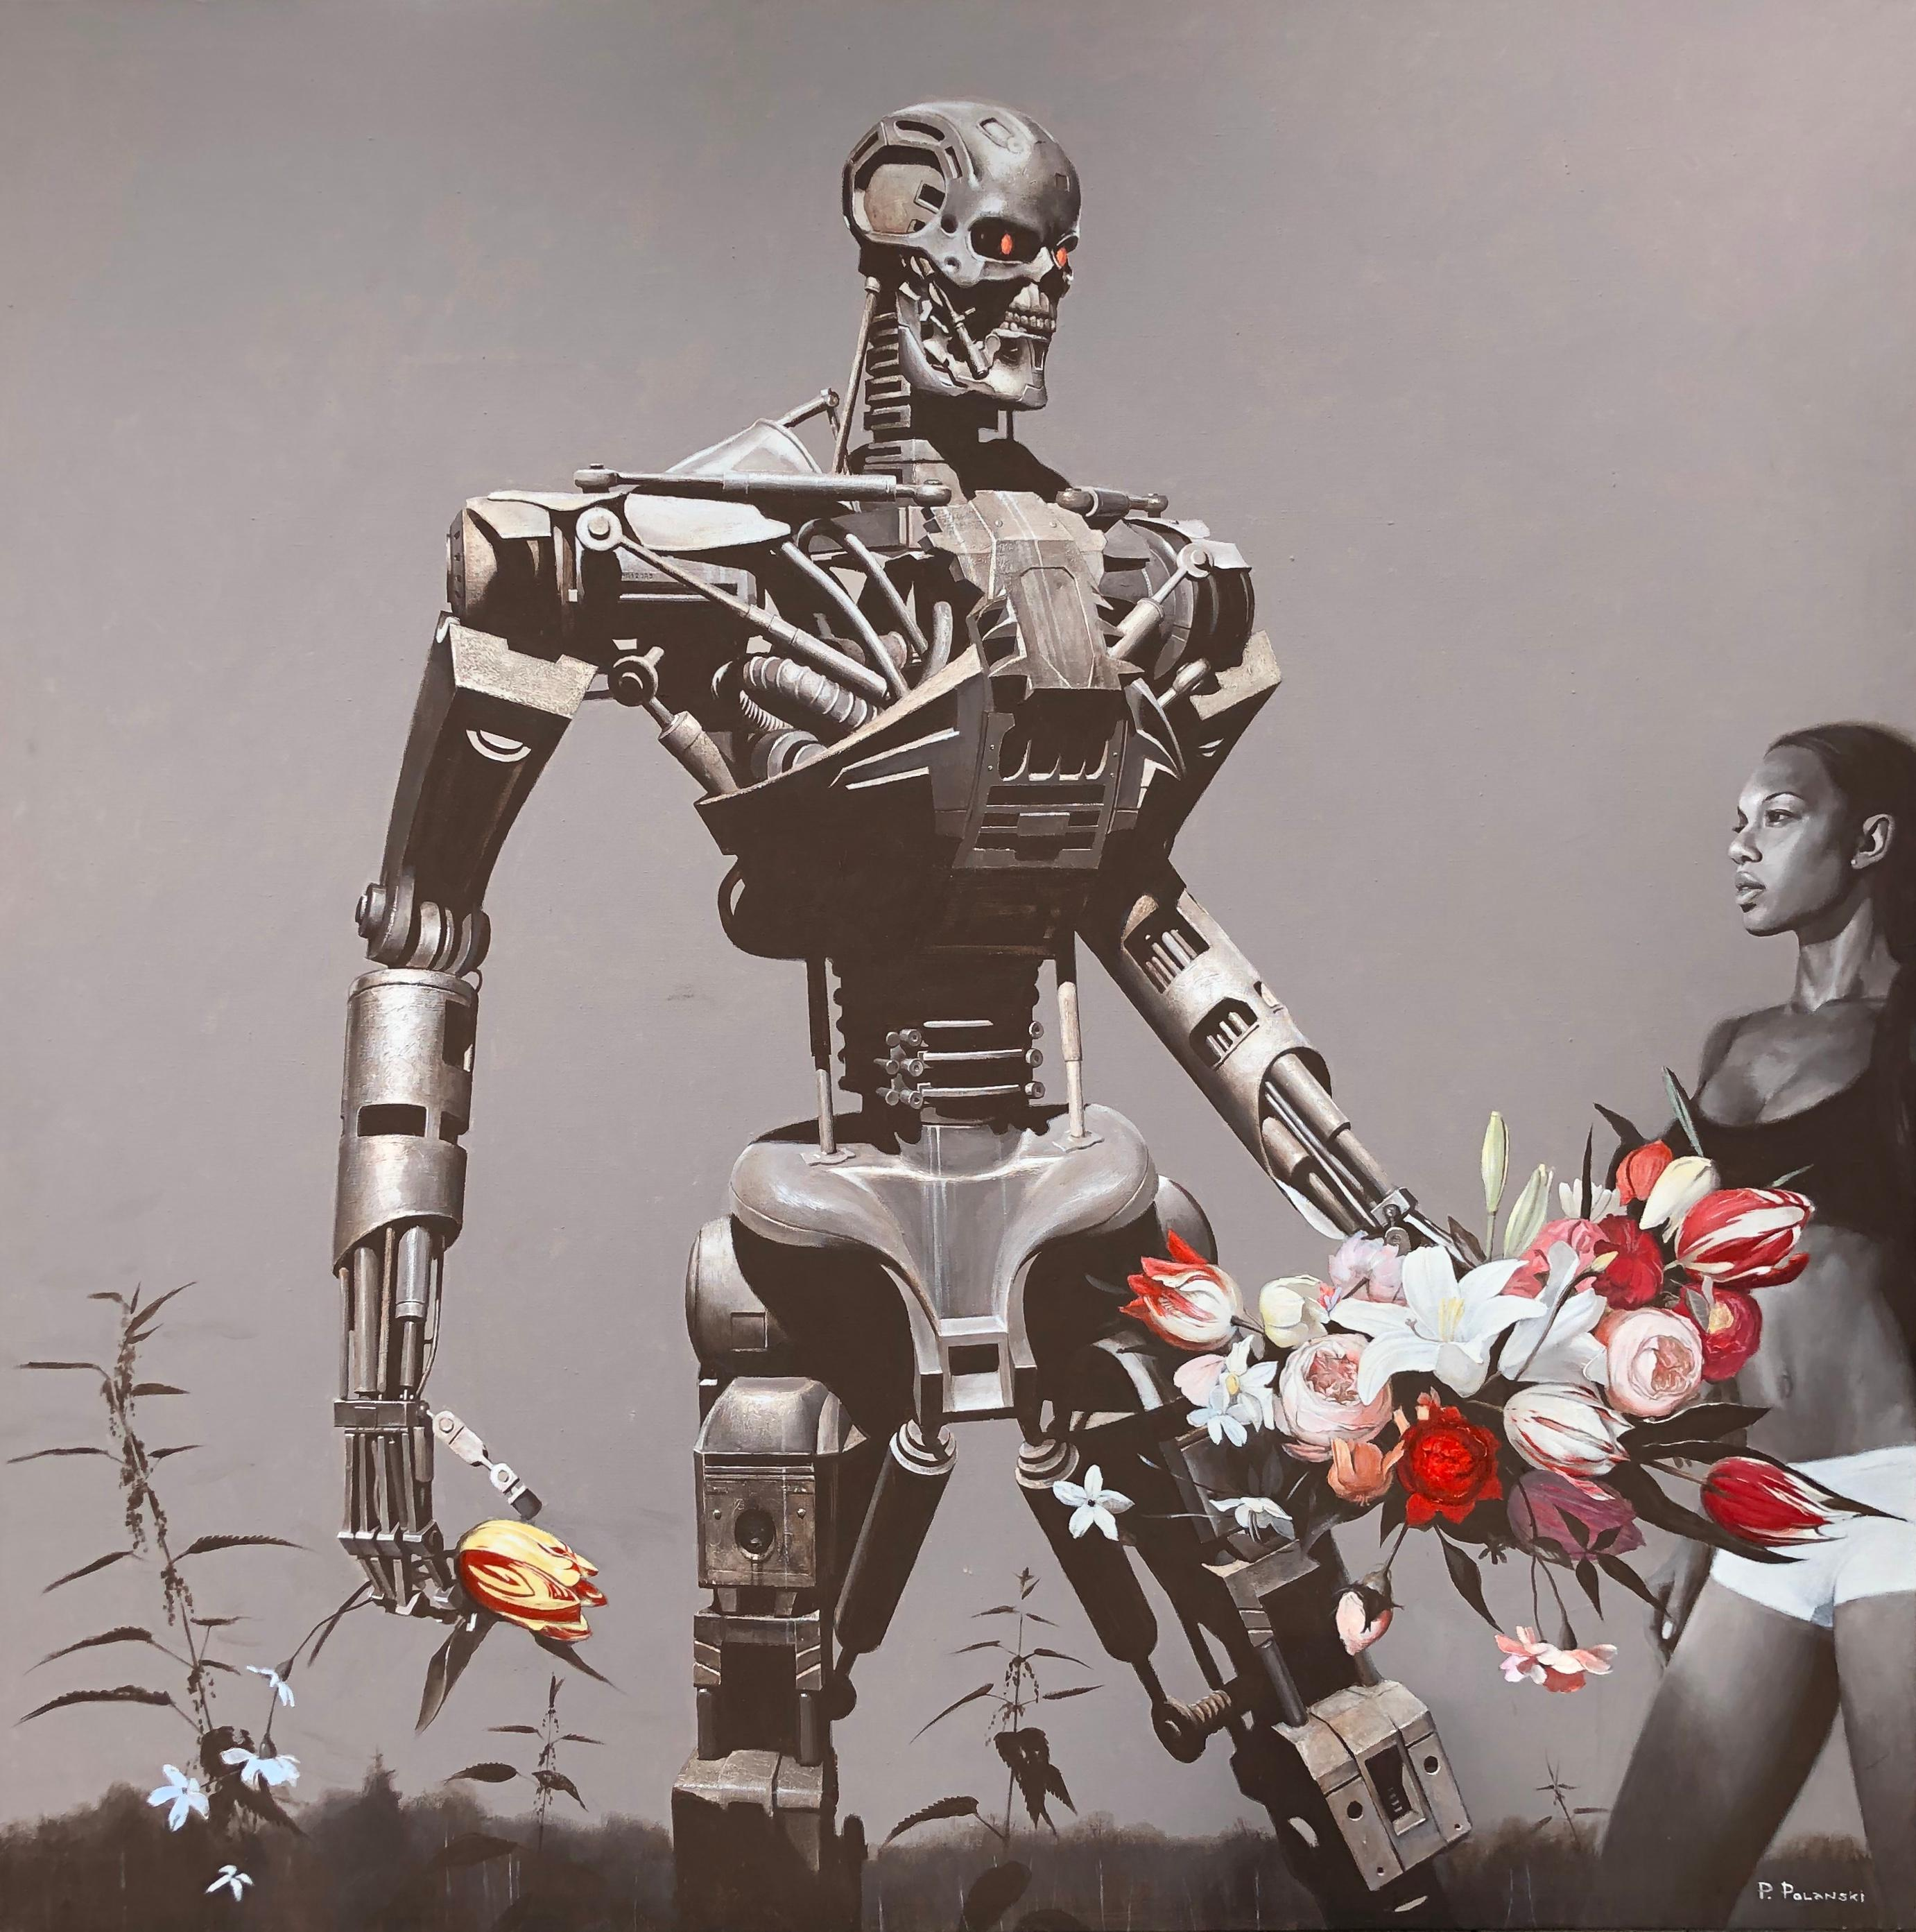 Terminator - interior art, made in grey,sepia, white, black, red, pink color